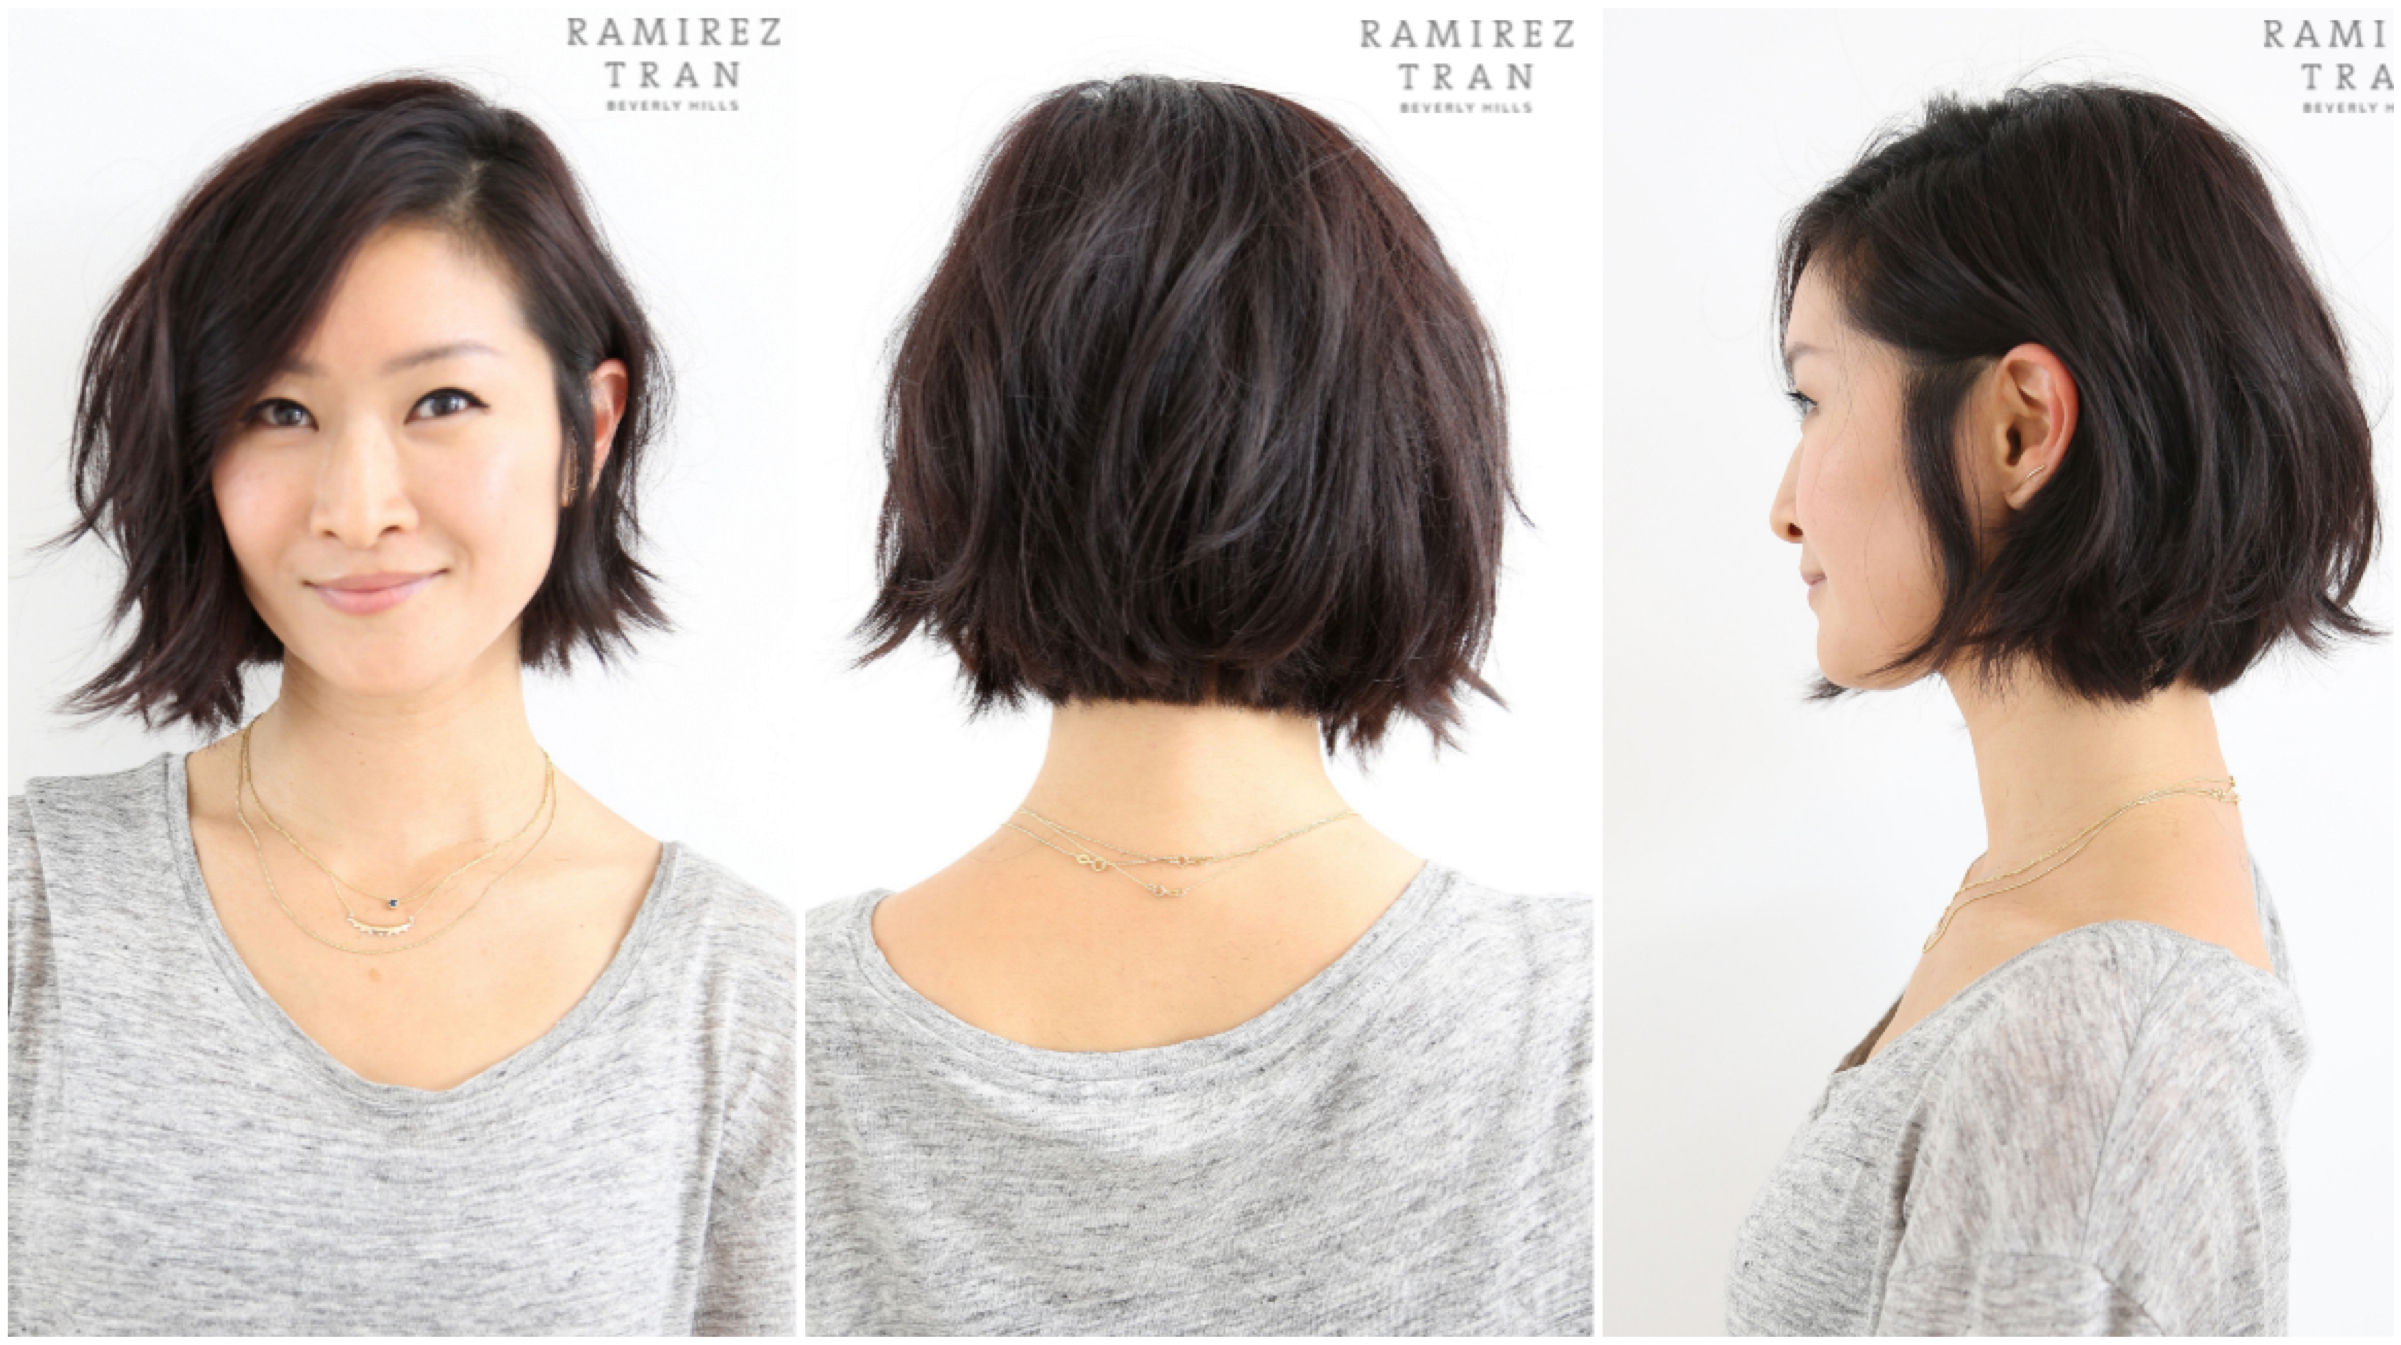 Top Saved Ideas In Short And Medium-length Hair Include